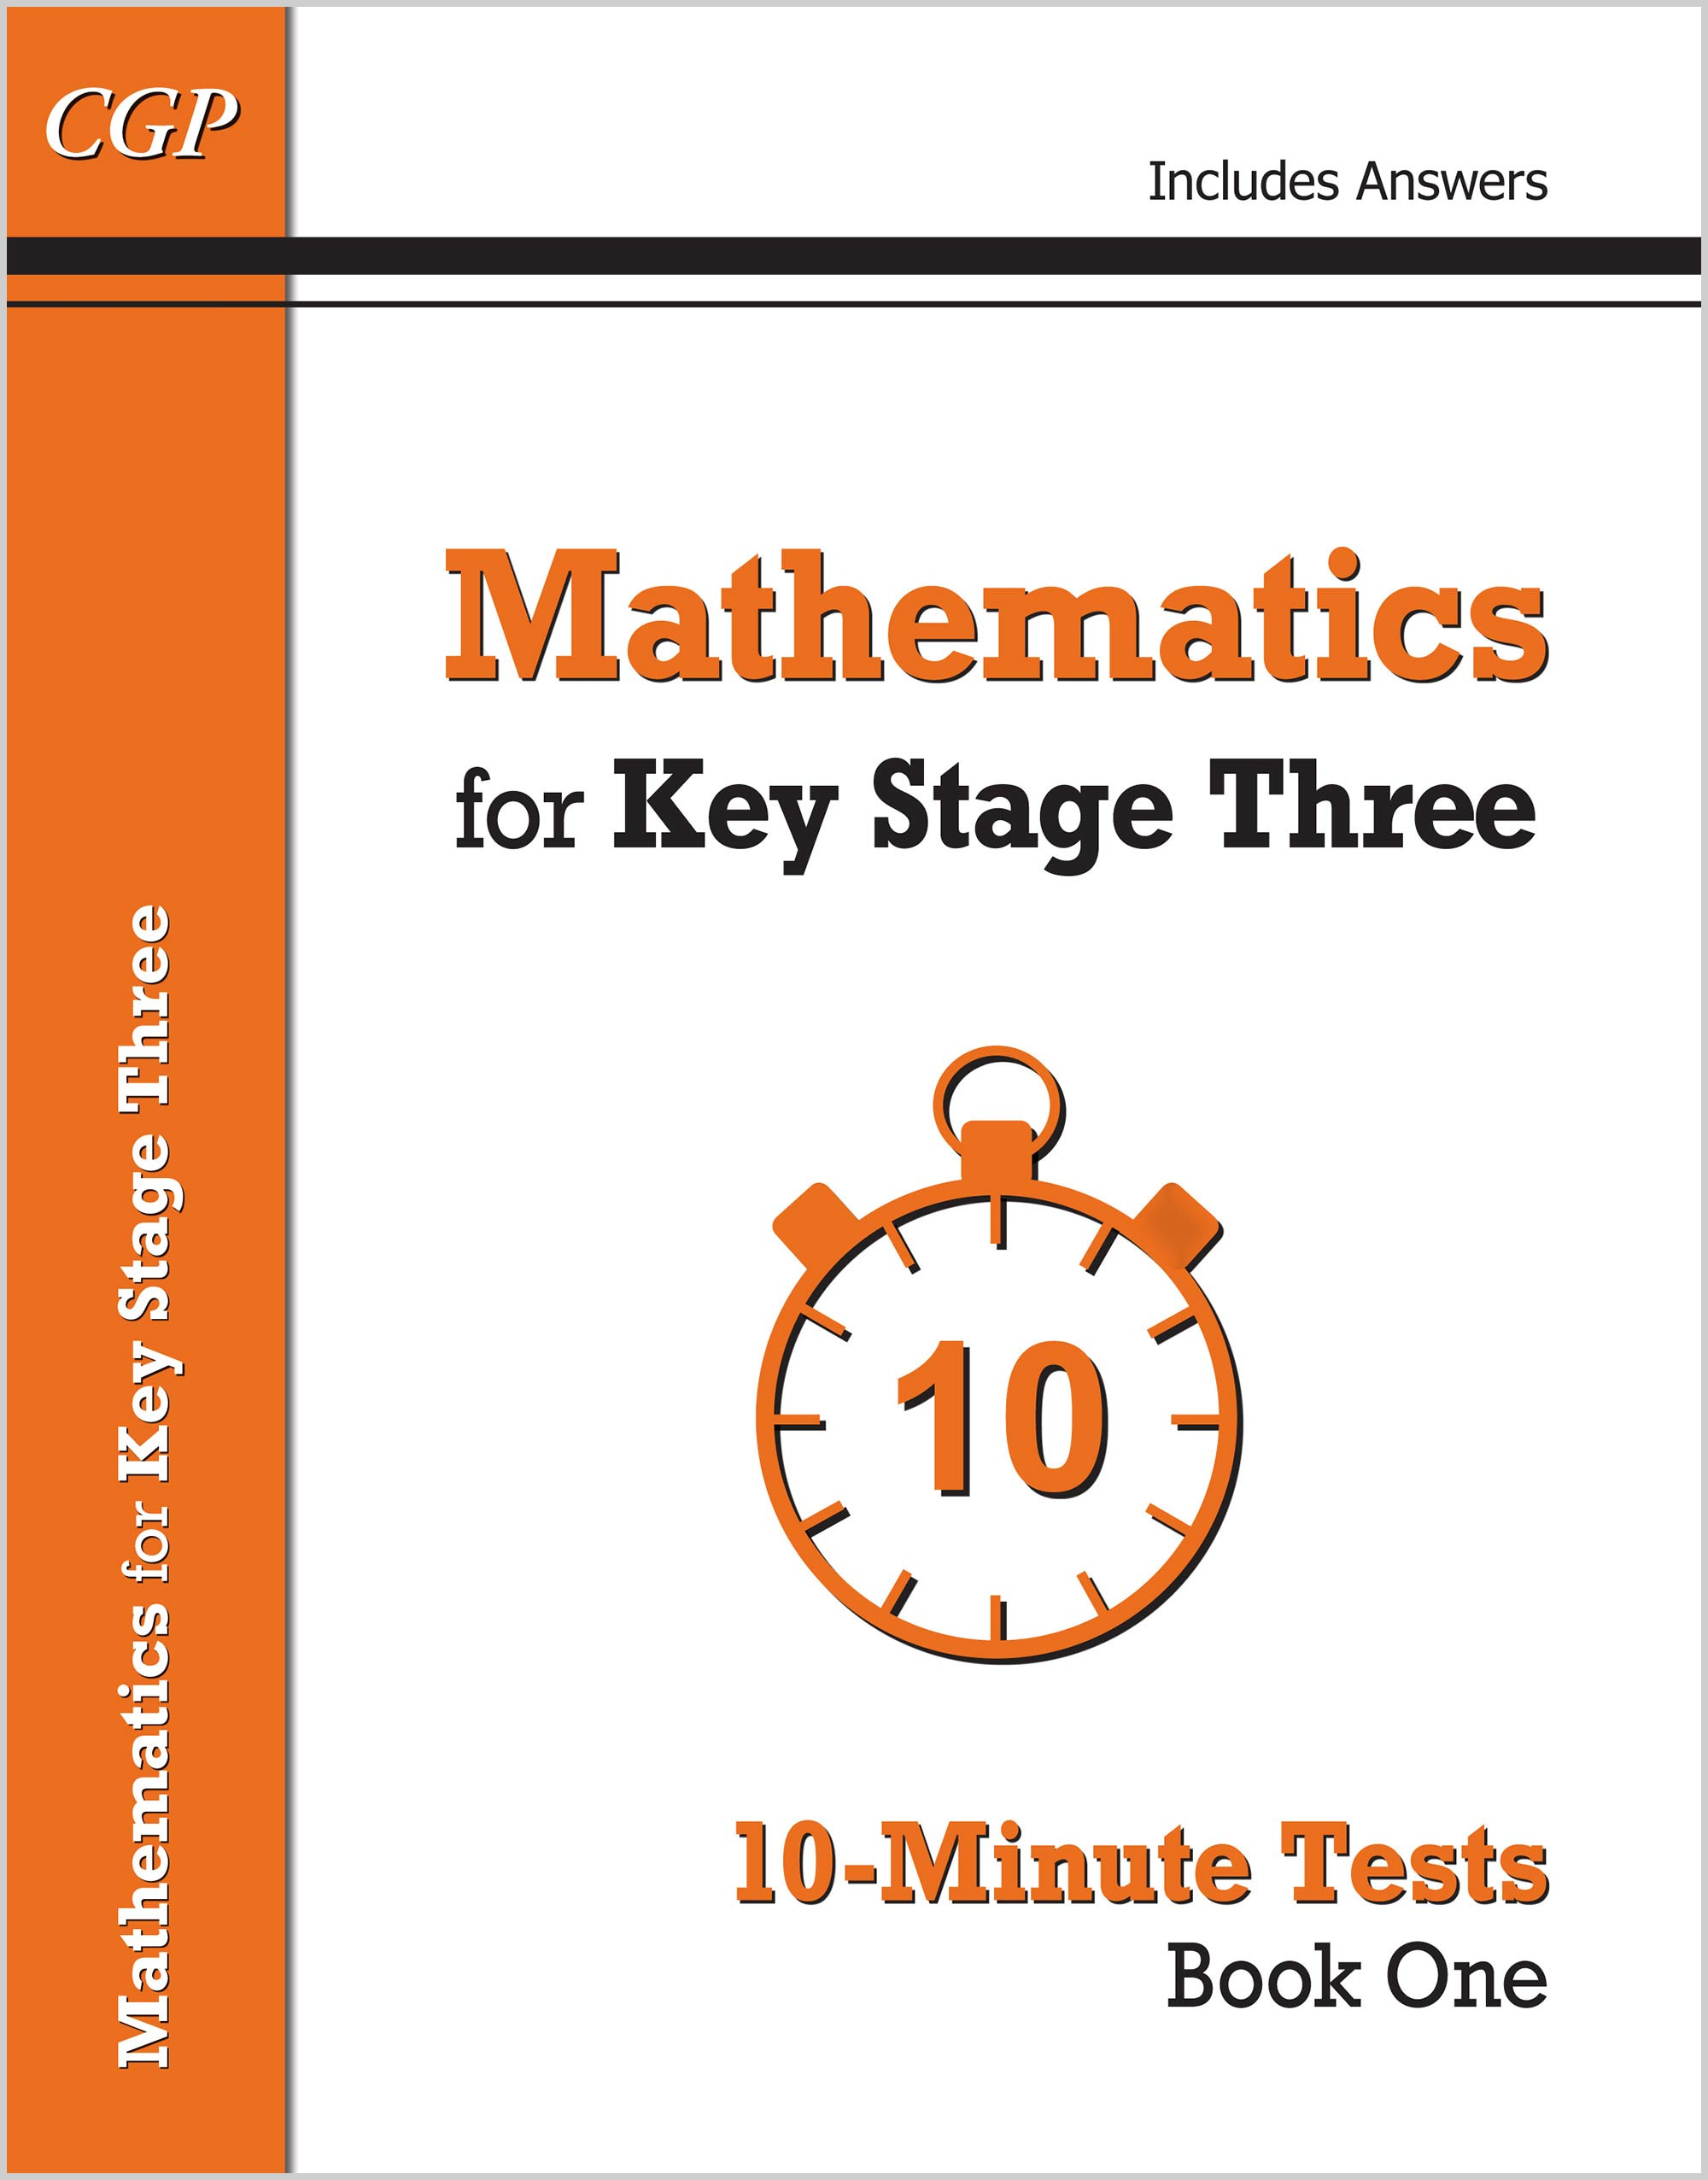 M1XP31 - Mathematics for KS3: 10-Minute Tests - Book 1 (including Answers)